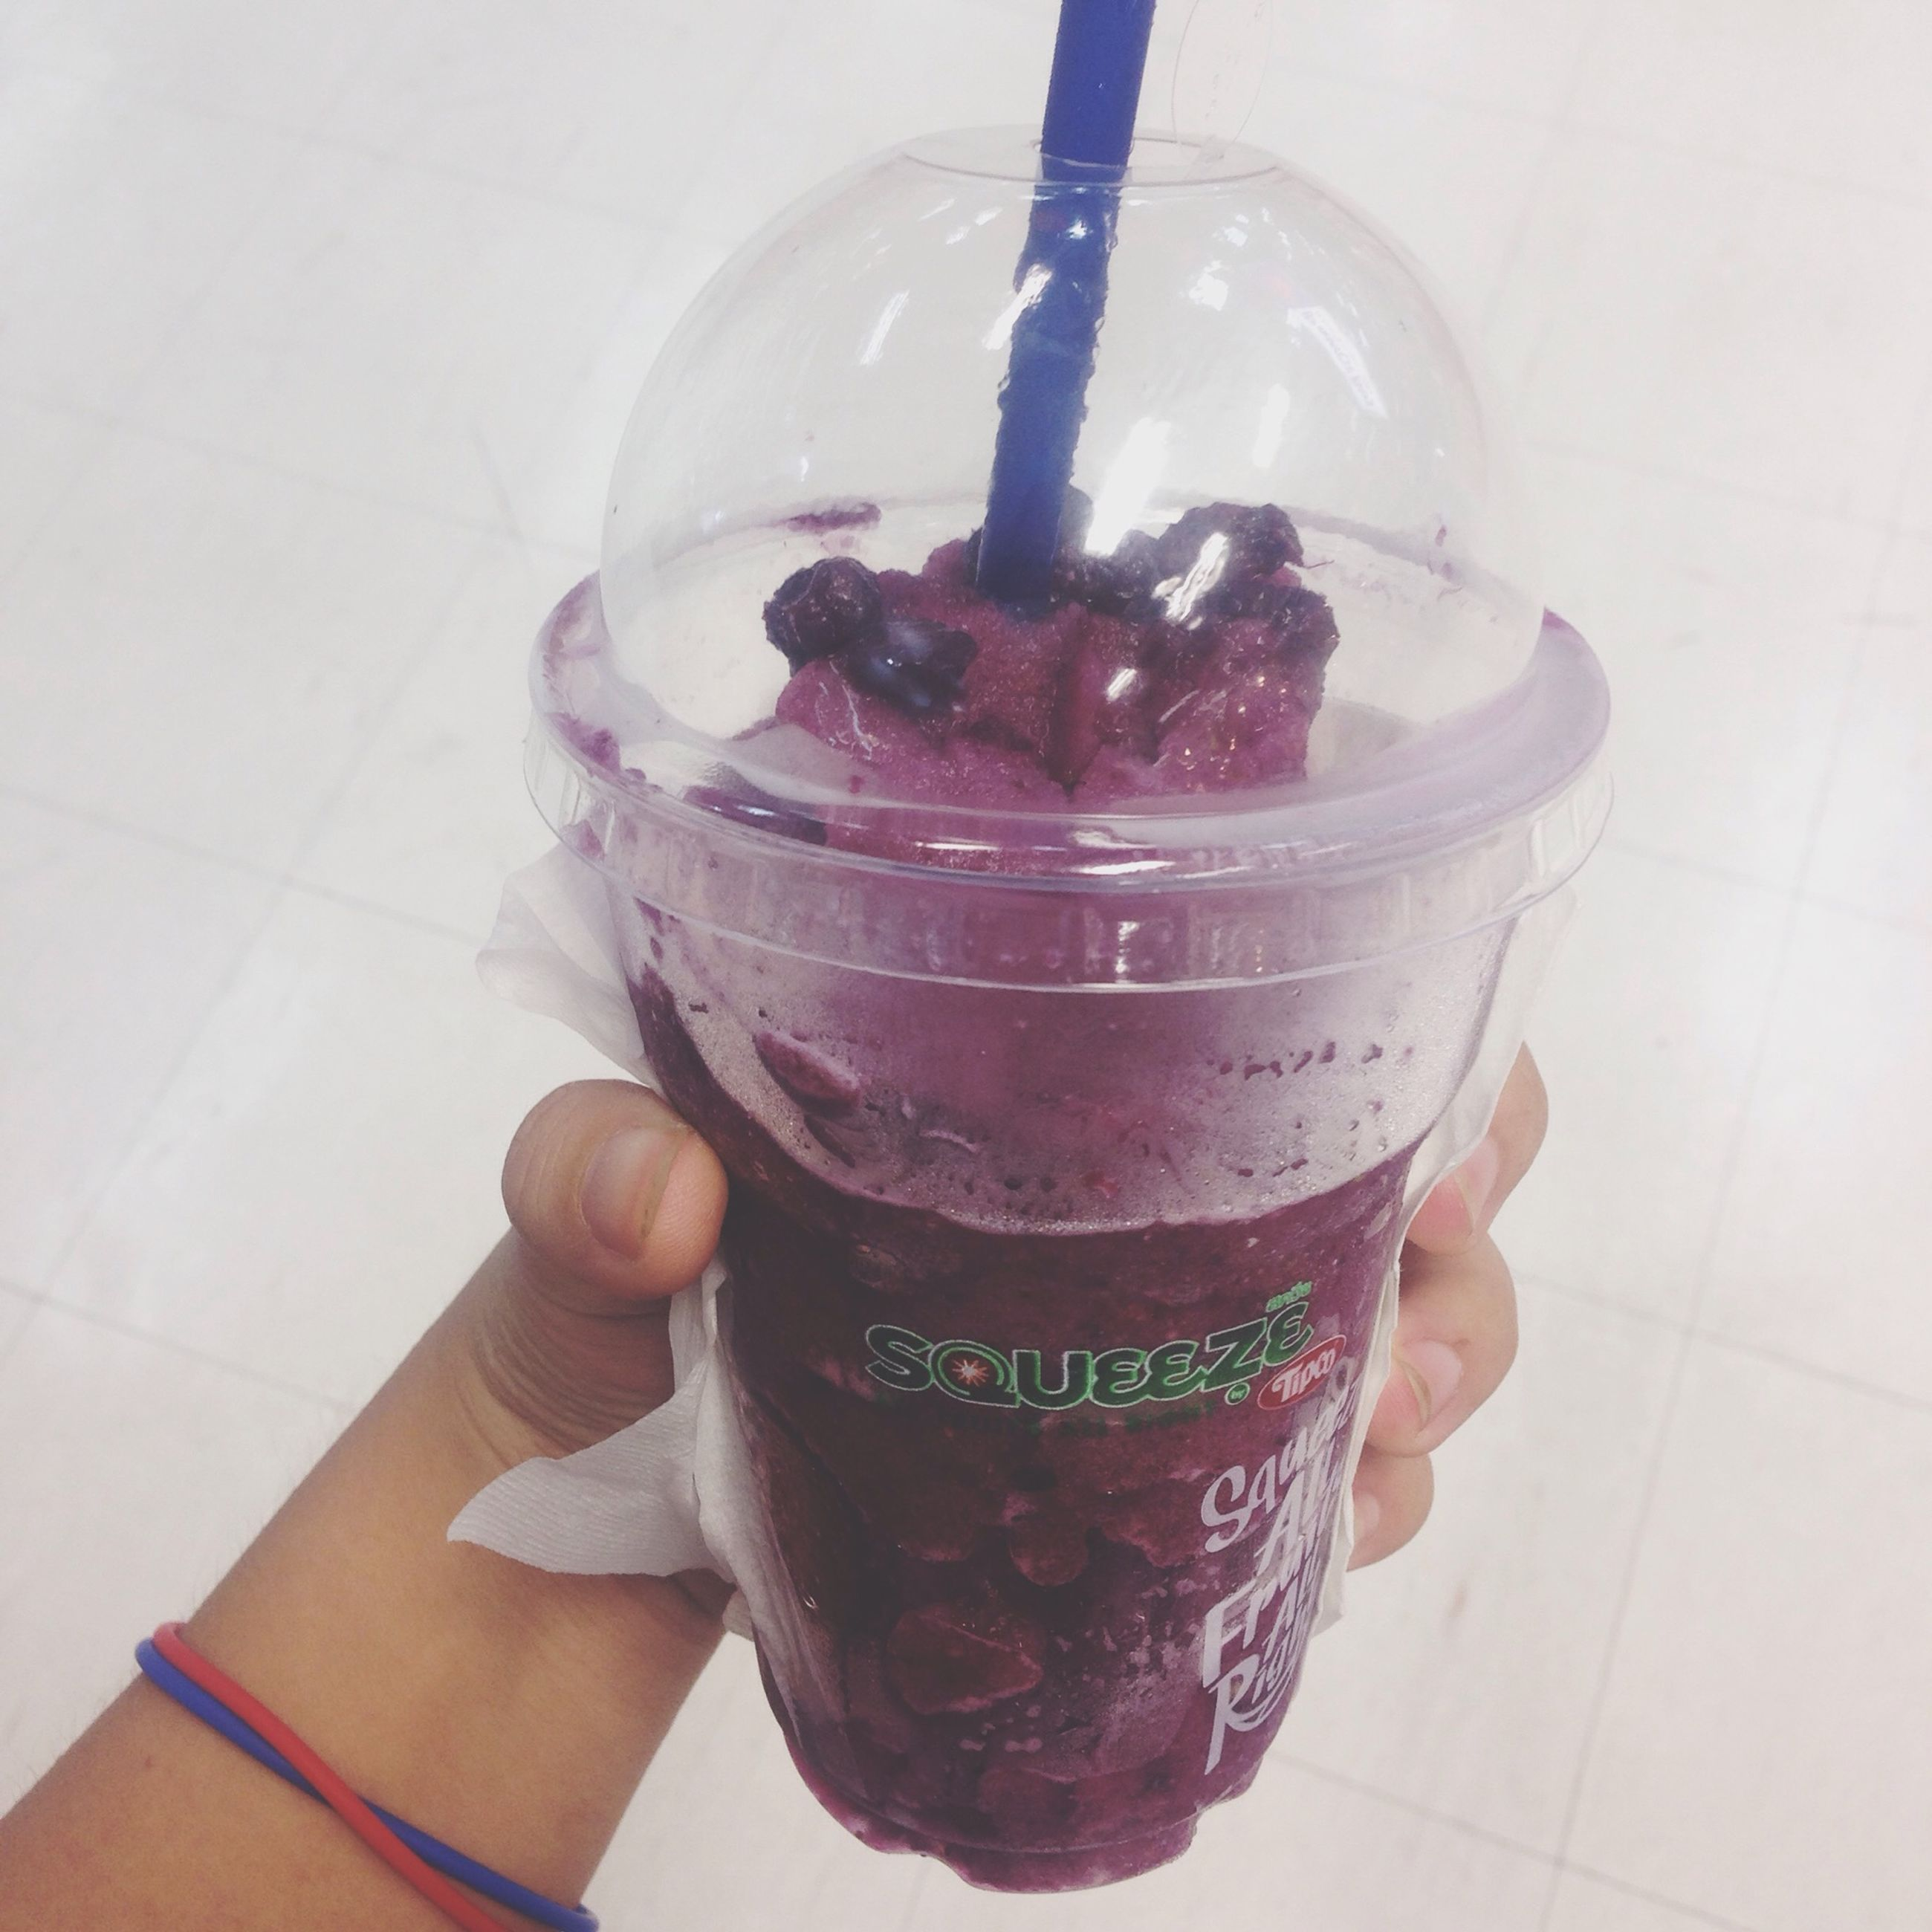 food and drink, freshness, sweet food, food, person, refreshment, drink, indoors, ice cream, dessert, indulgence, holding, frozen food, unhealthy eating, drinking glass, cold temperature, close-up